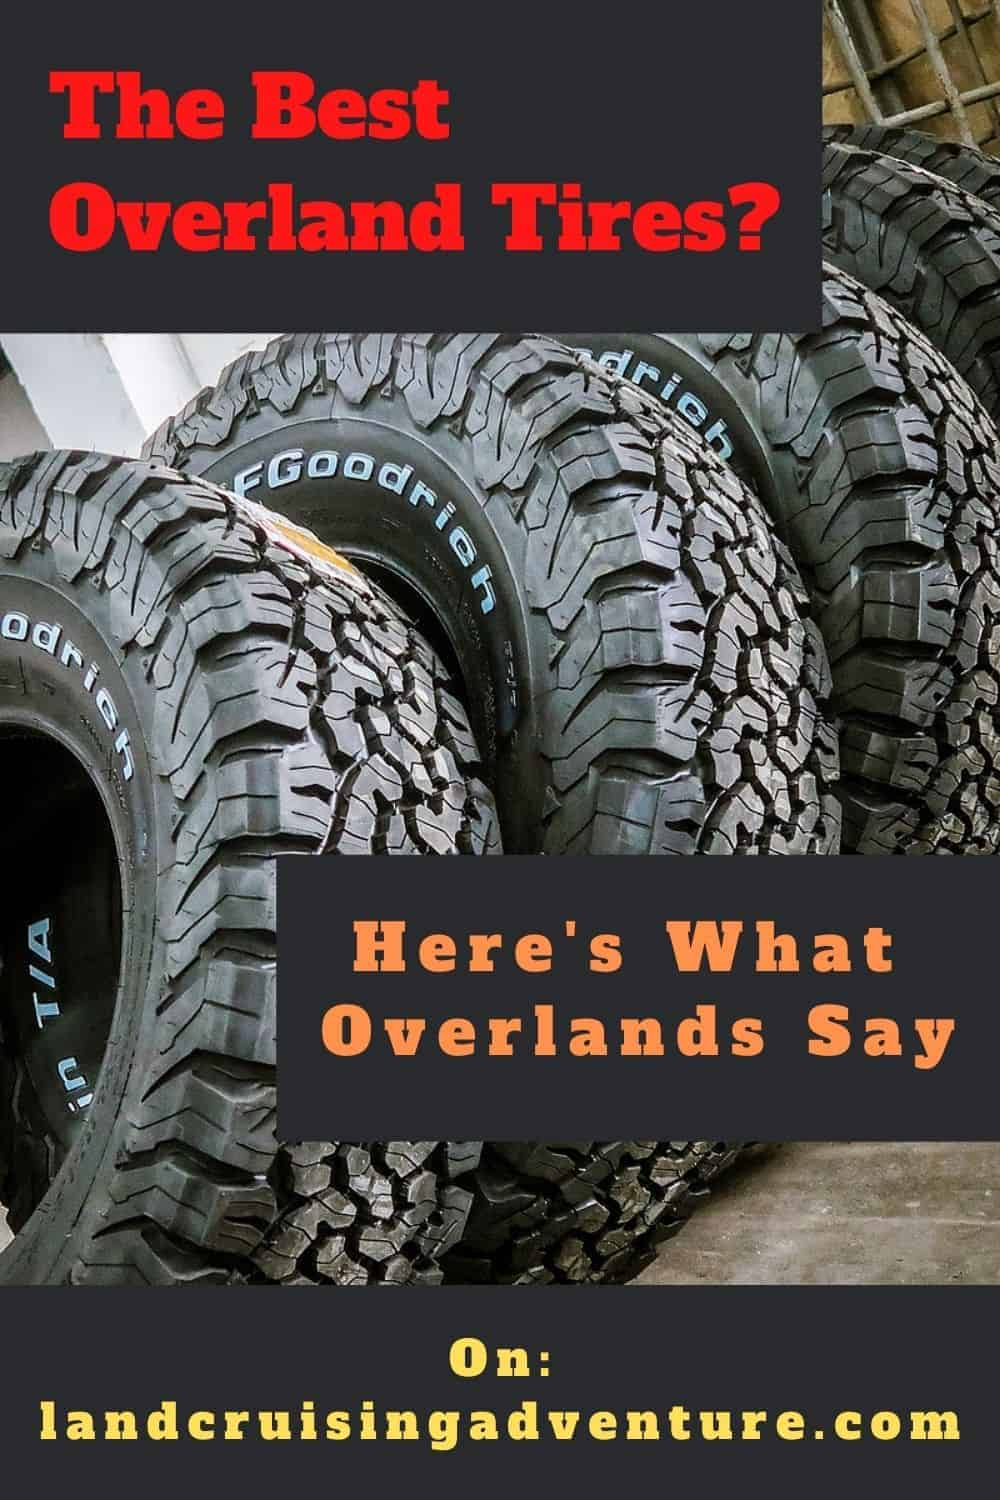 Overland tires - fat or skinny tires?